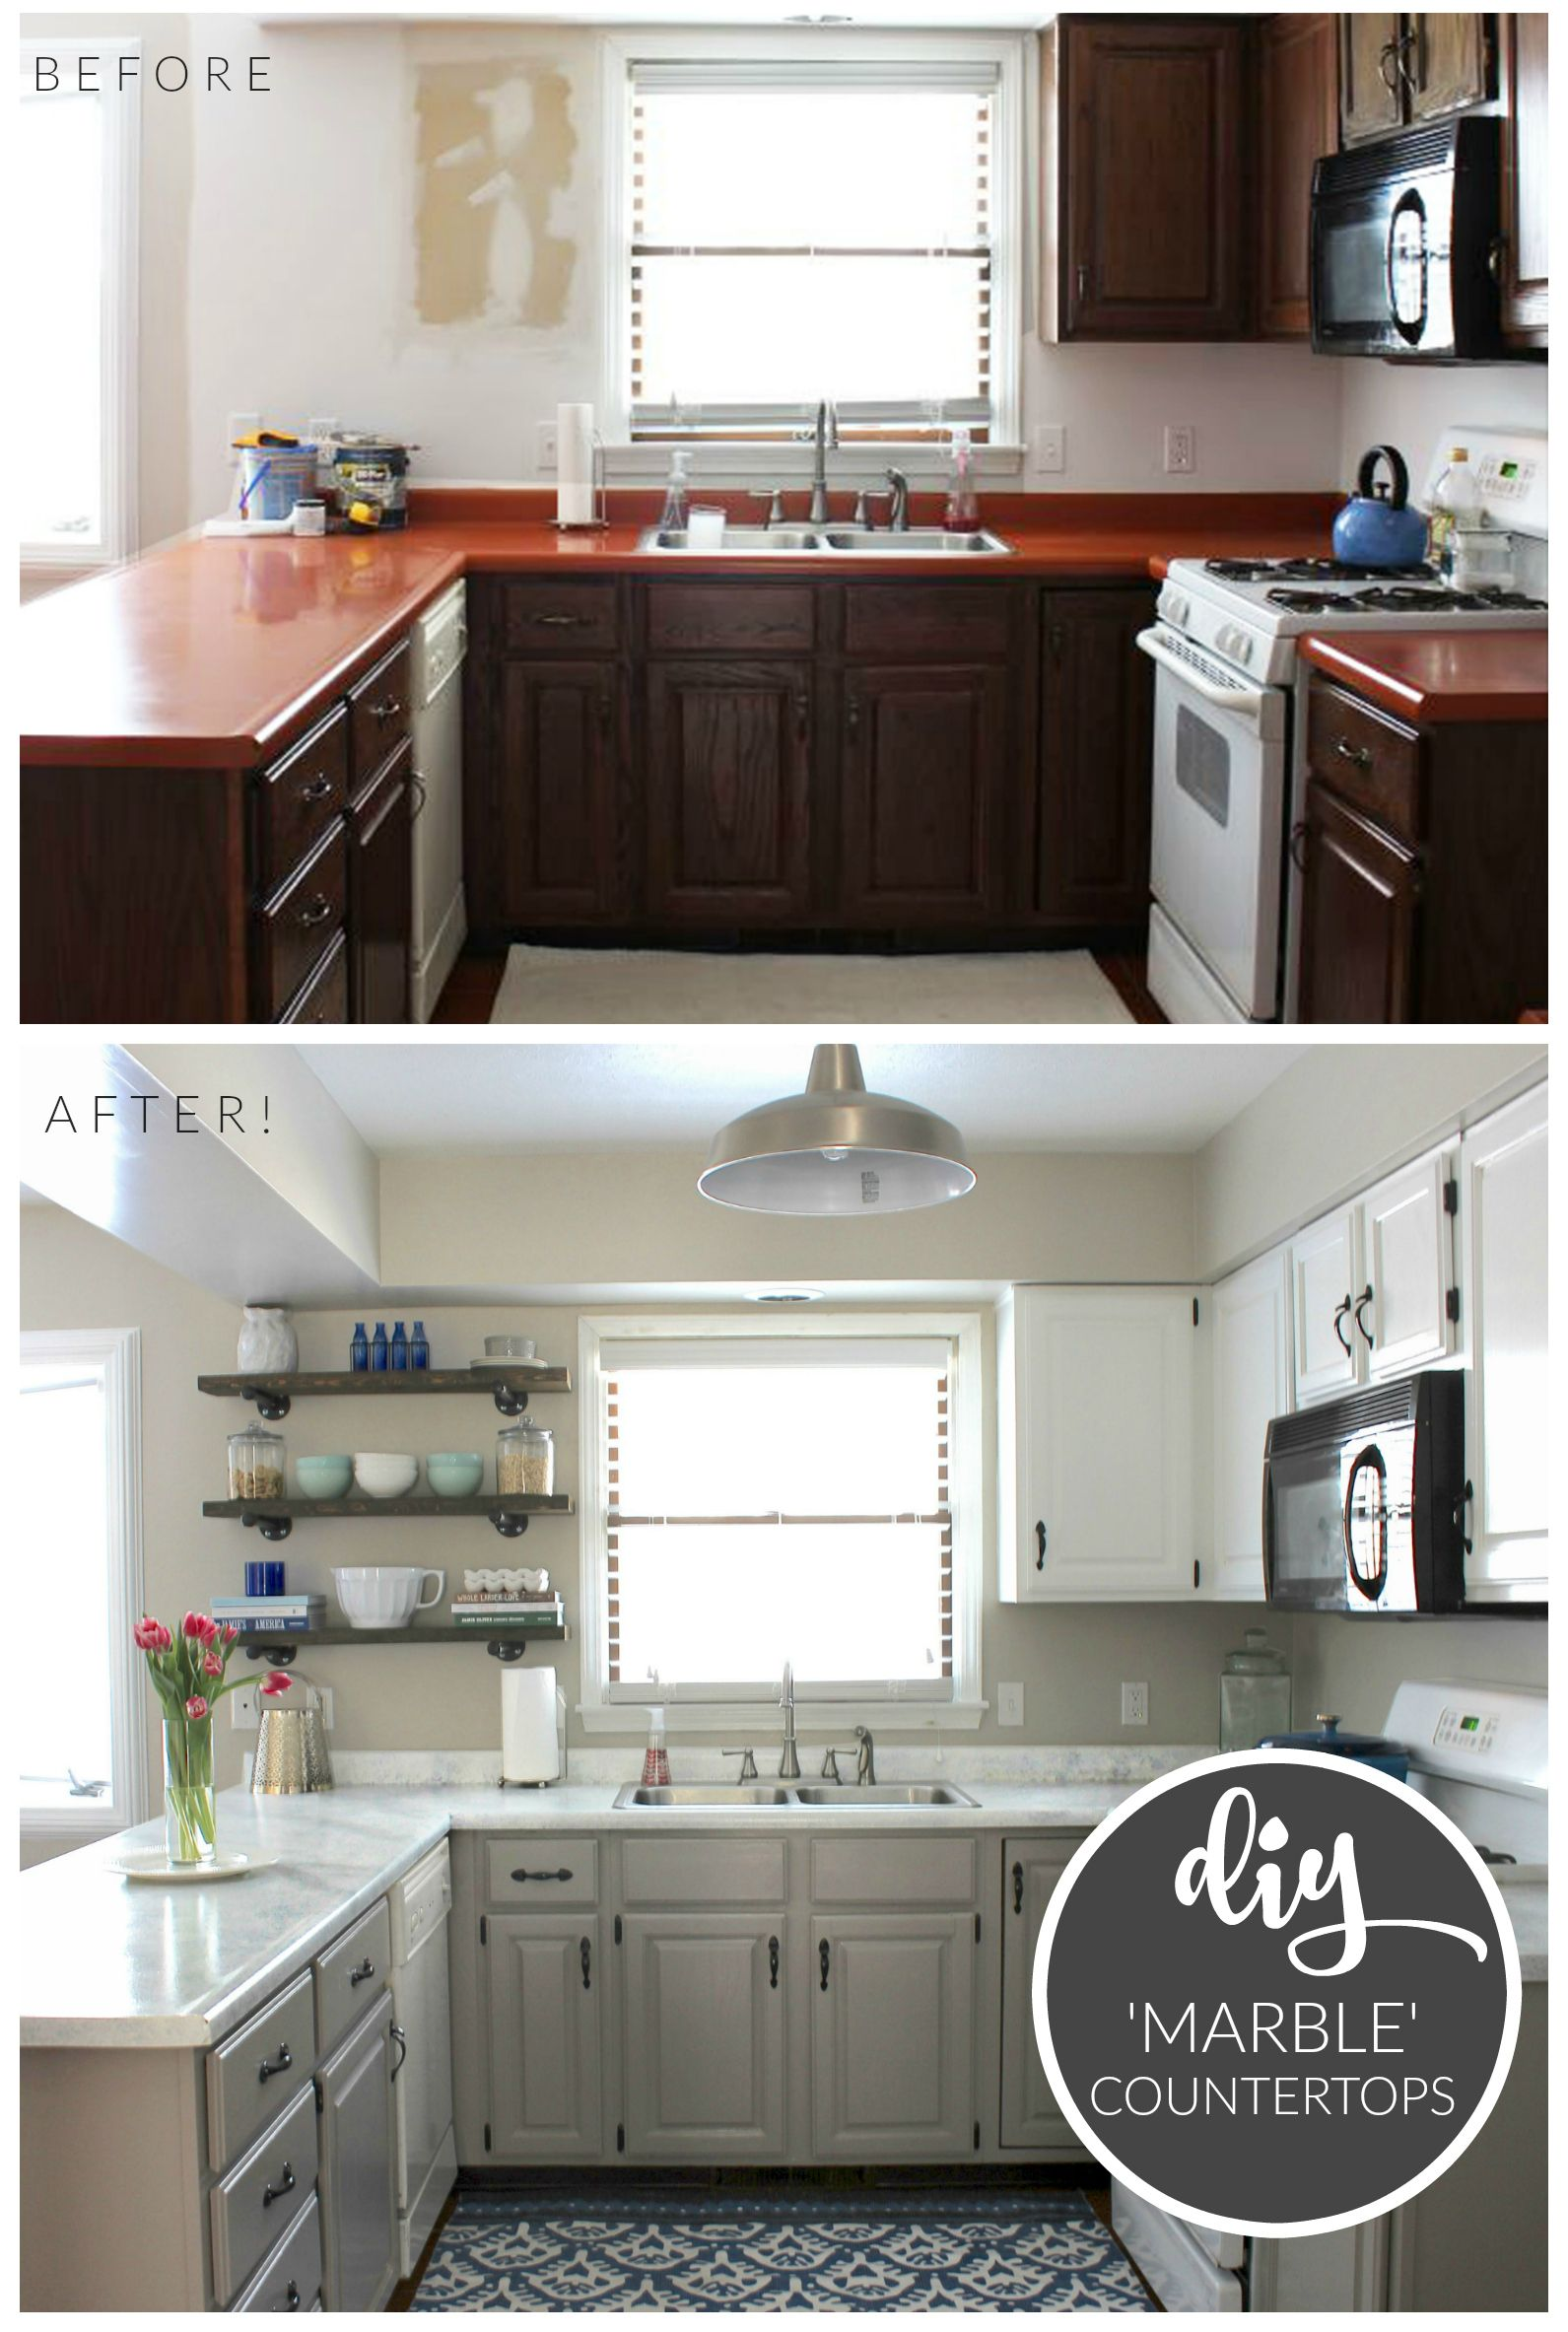 inexpensive kitchen remodel Get inspired by these amazing before and after kitchen makeovers and start planning a kitchen redo of your own Budget kitchen makeover